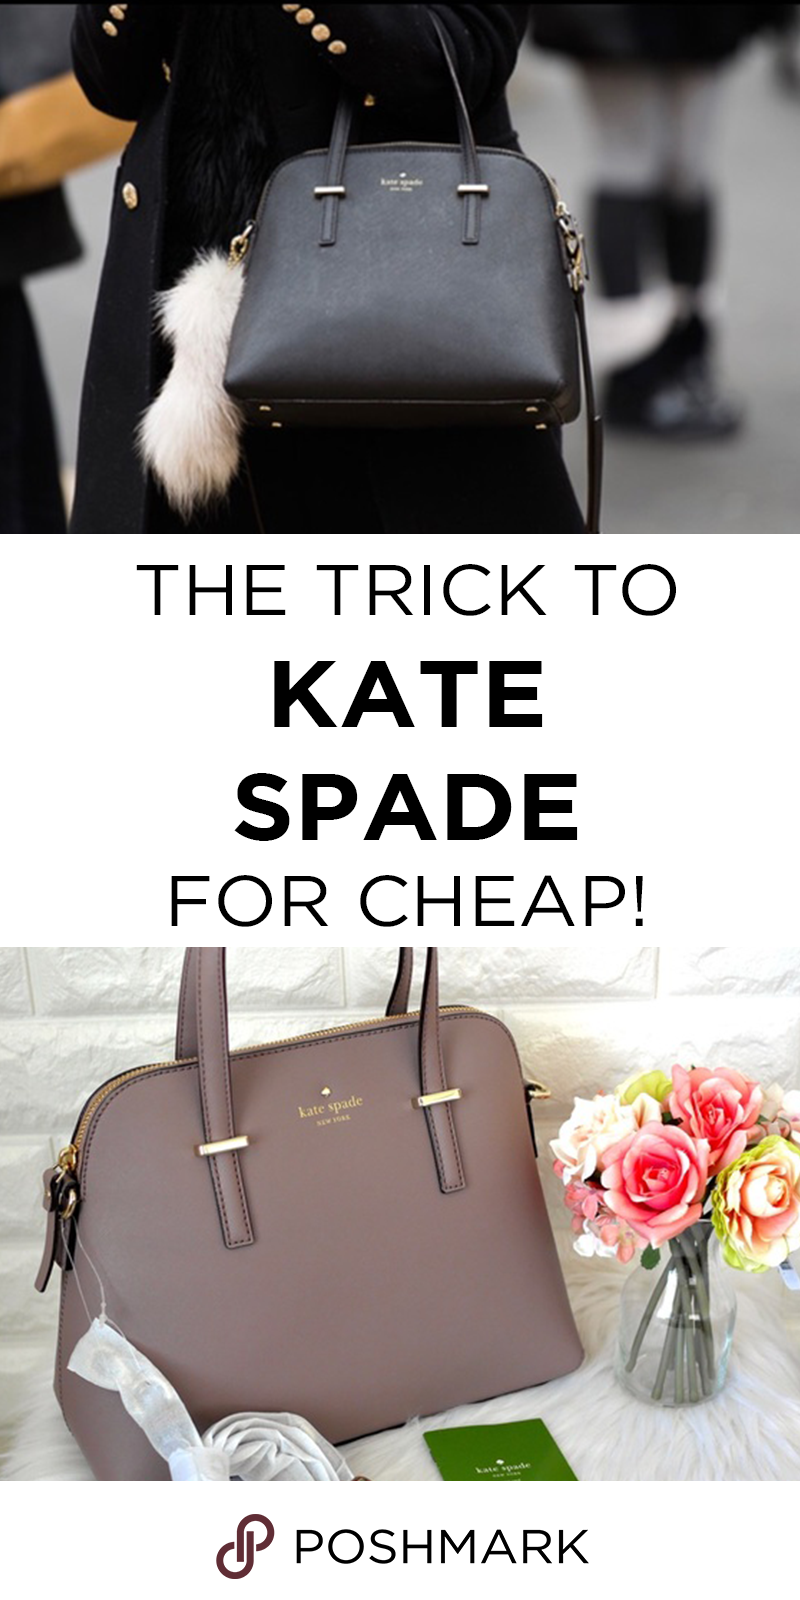 17b49873bcf7 Up to 70% off Kate Spade handbags and purses on Poshmark. Download the app  to shop.